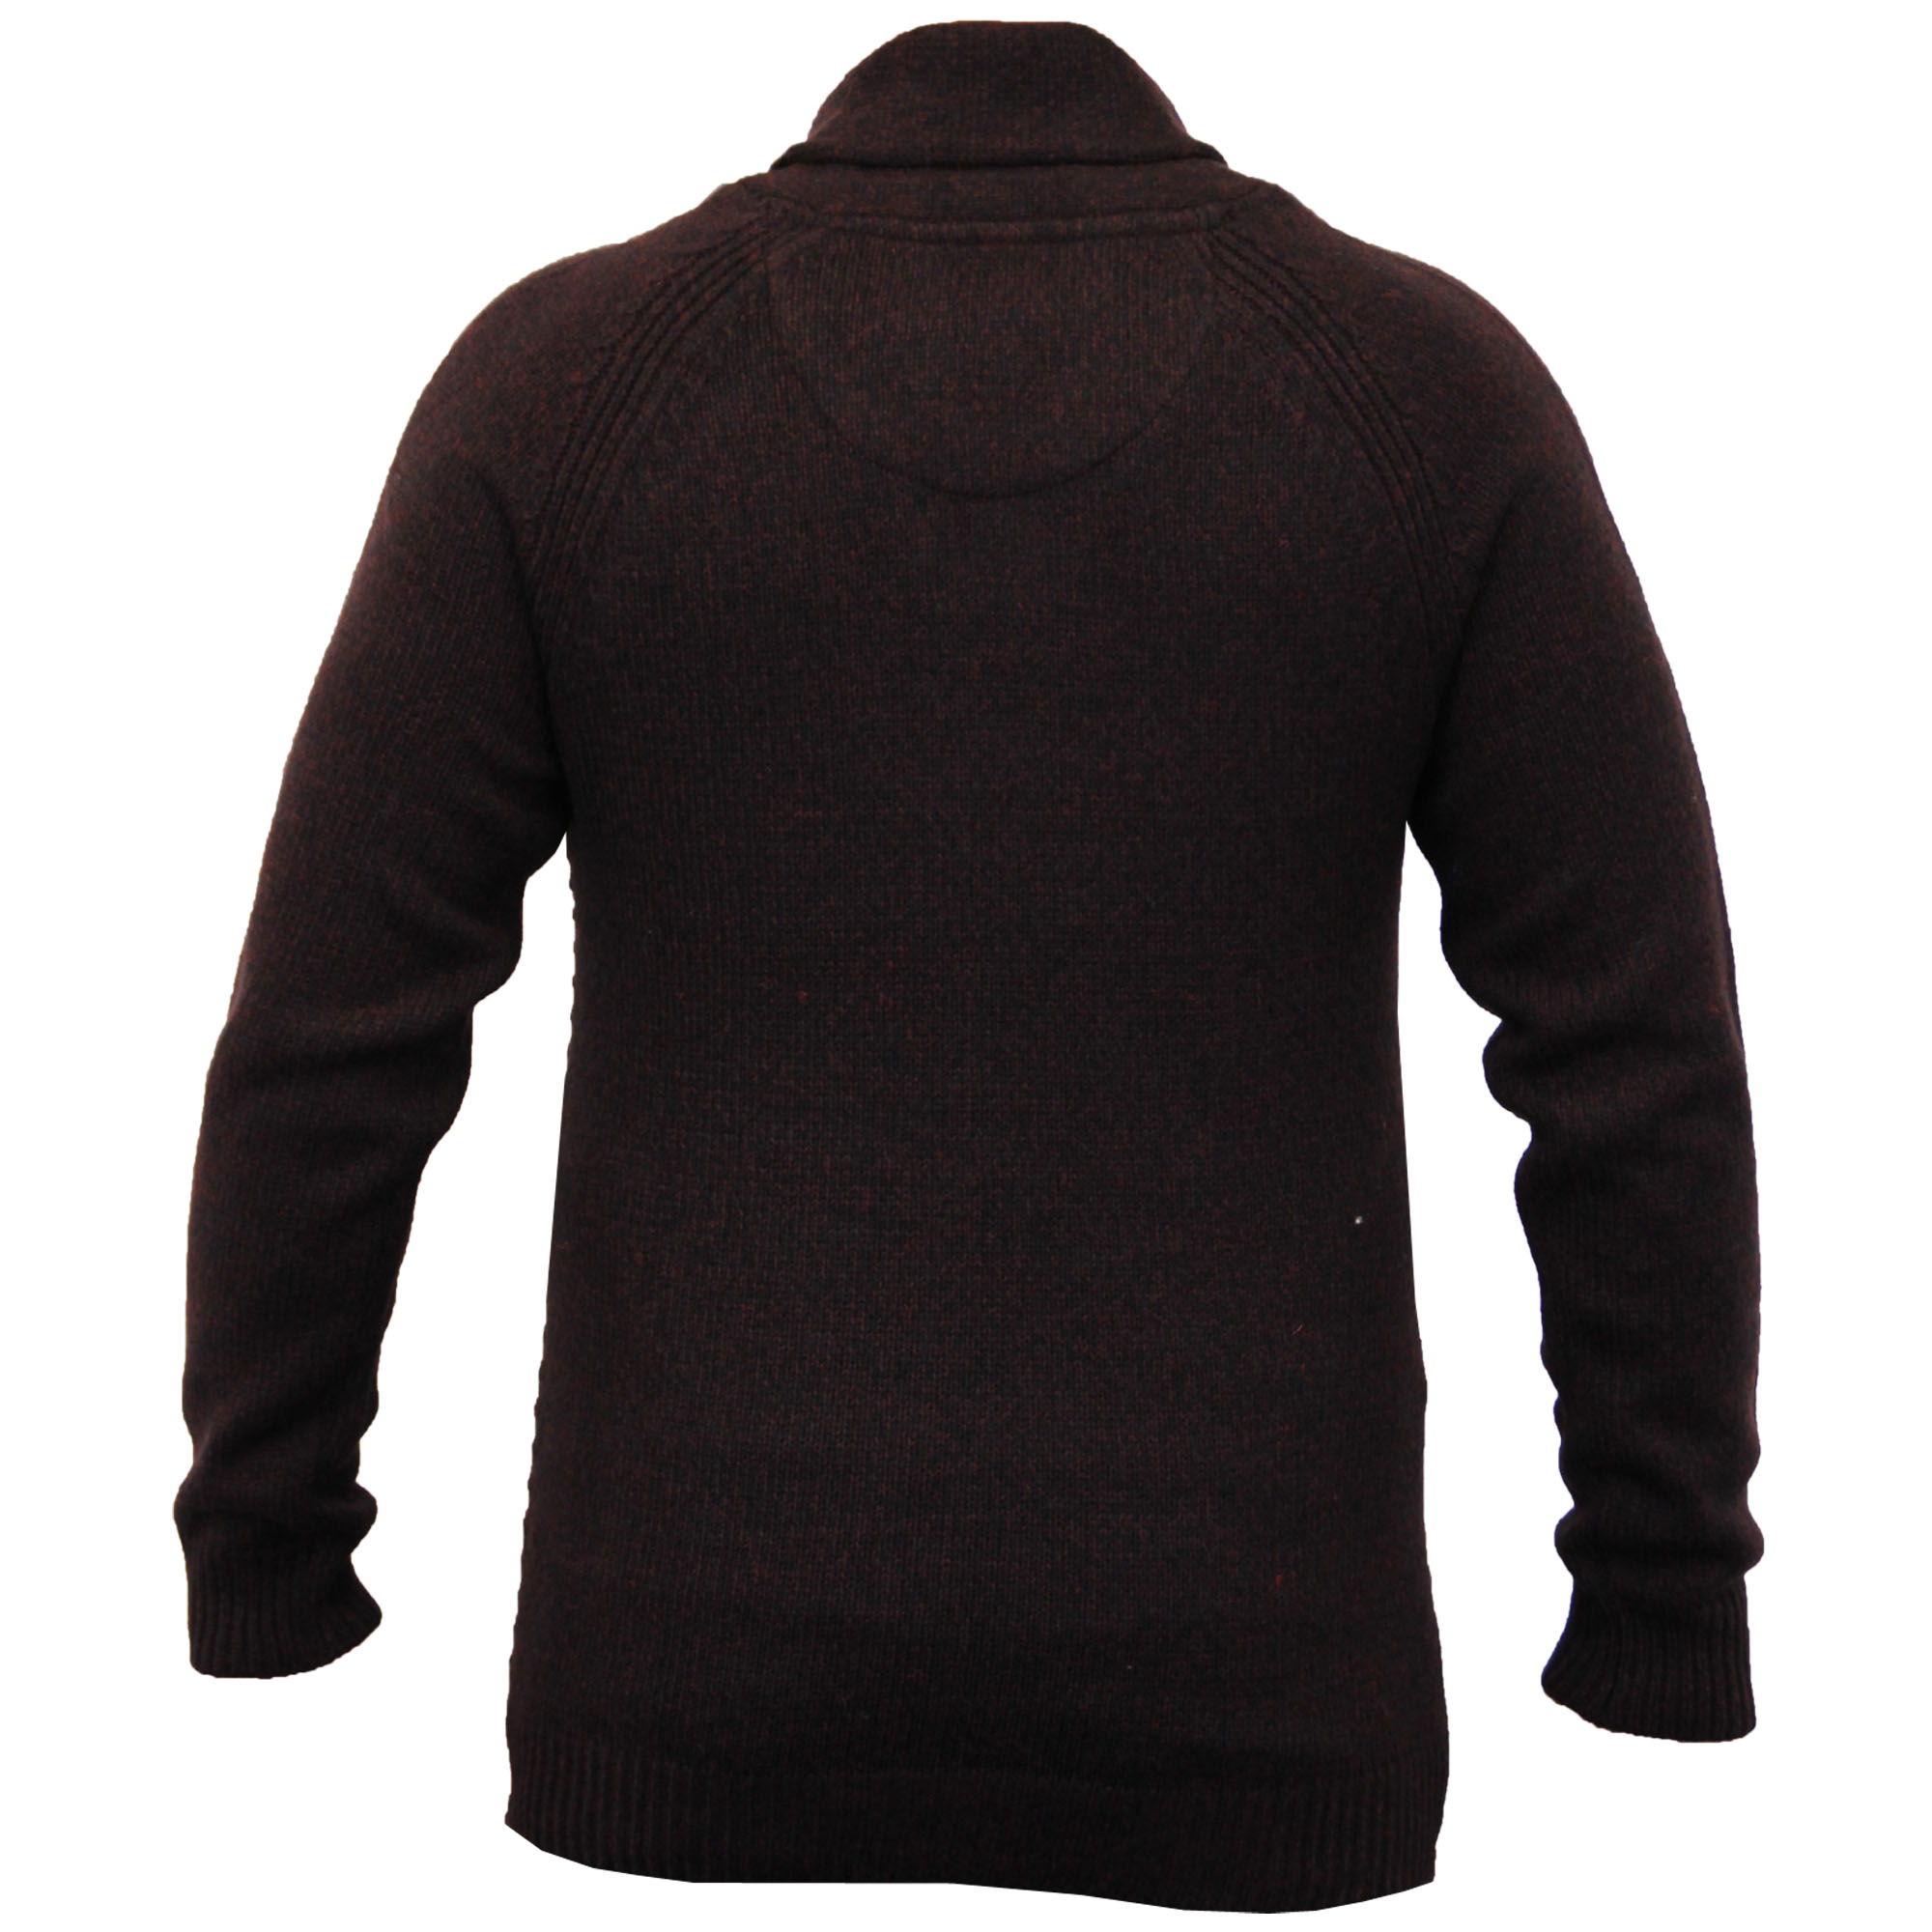 Wrap up in style with our selection of golf sweaters from top brands. These golf jumpers will keep you warm as well as finishing off your outfit in style.